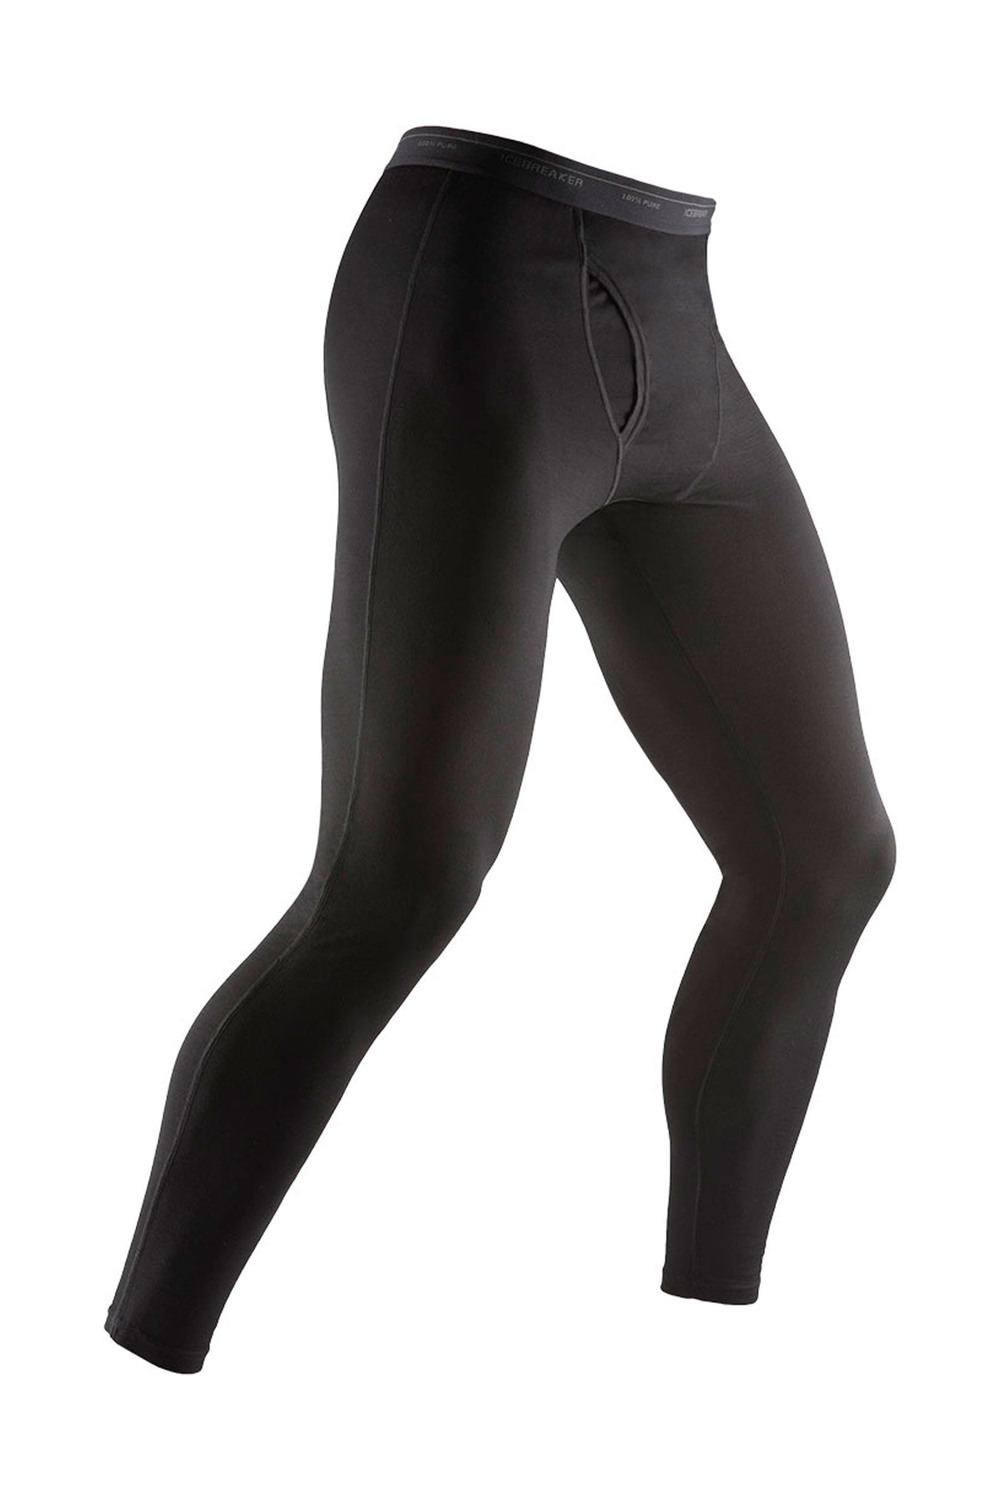 Long Underwear - Bottom Icebreaker - Oasis Leggings w/Fly 100% merino wool - 220 weight